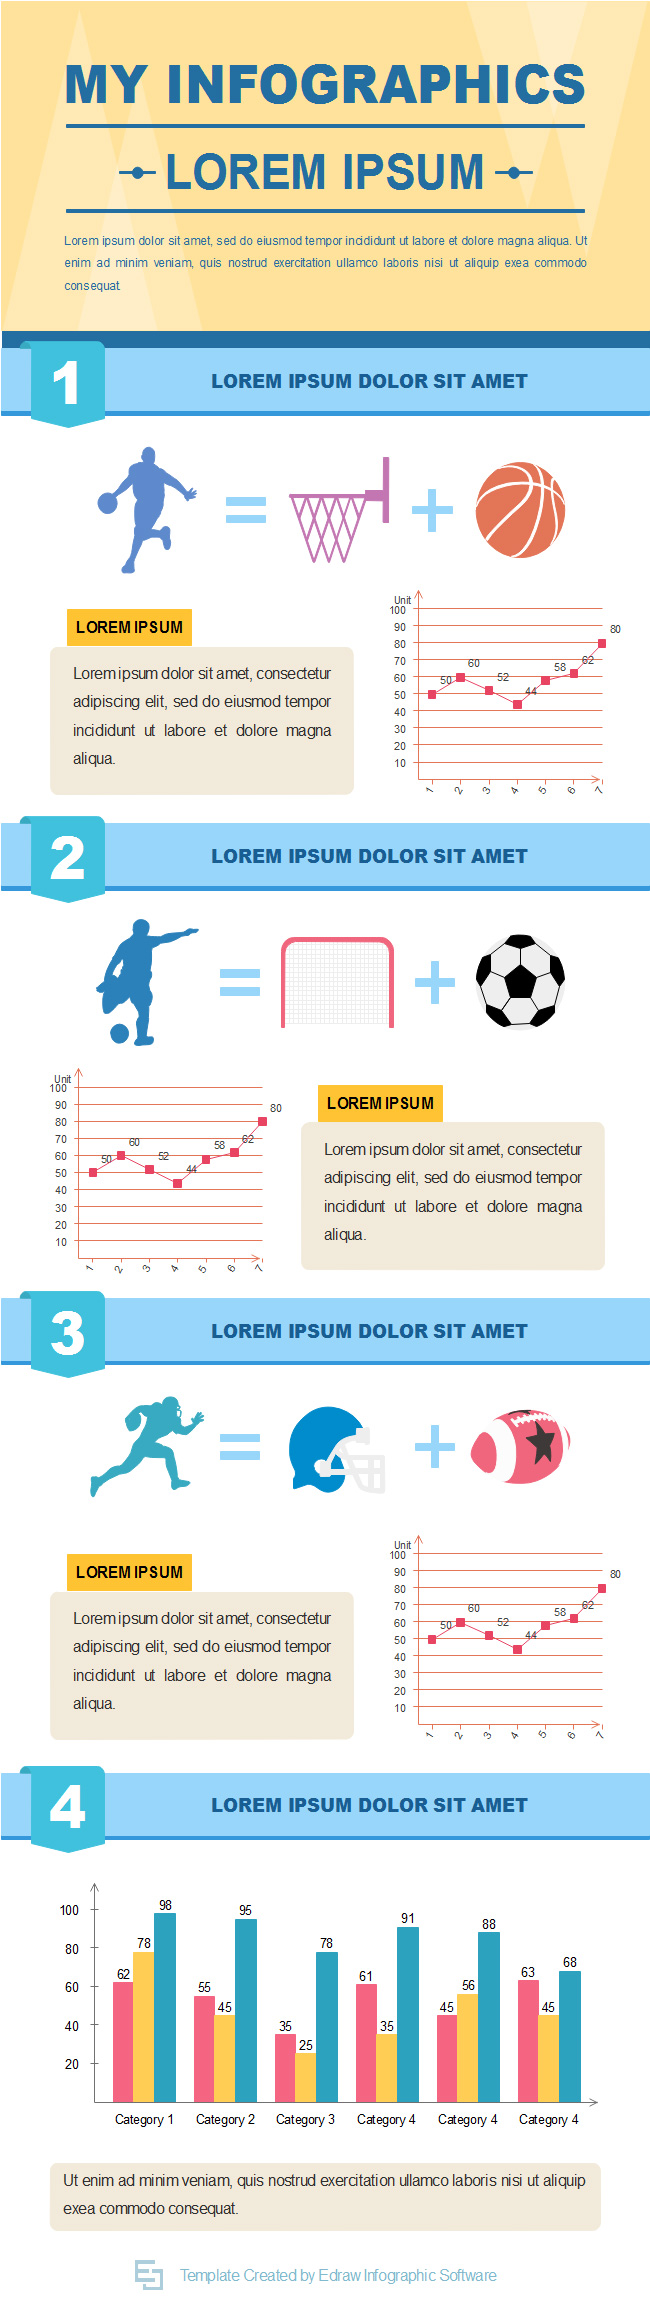 favorite-sport-infographic